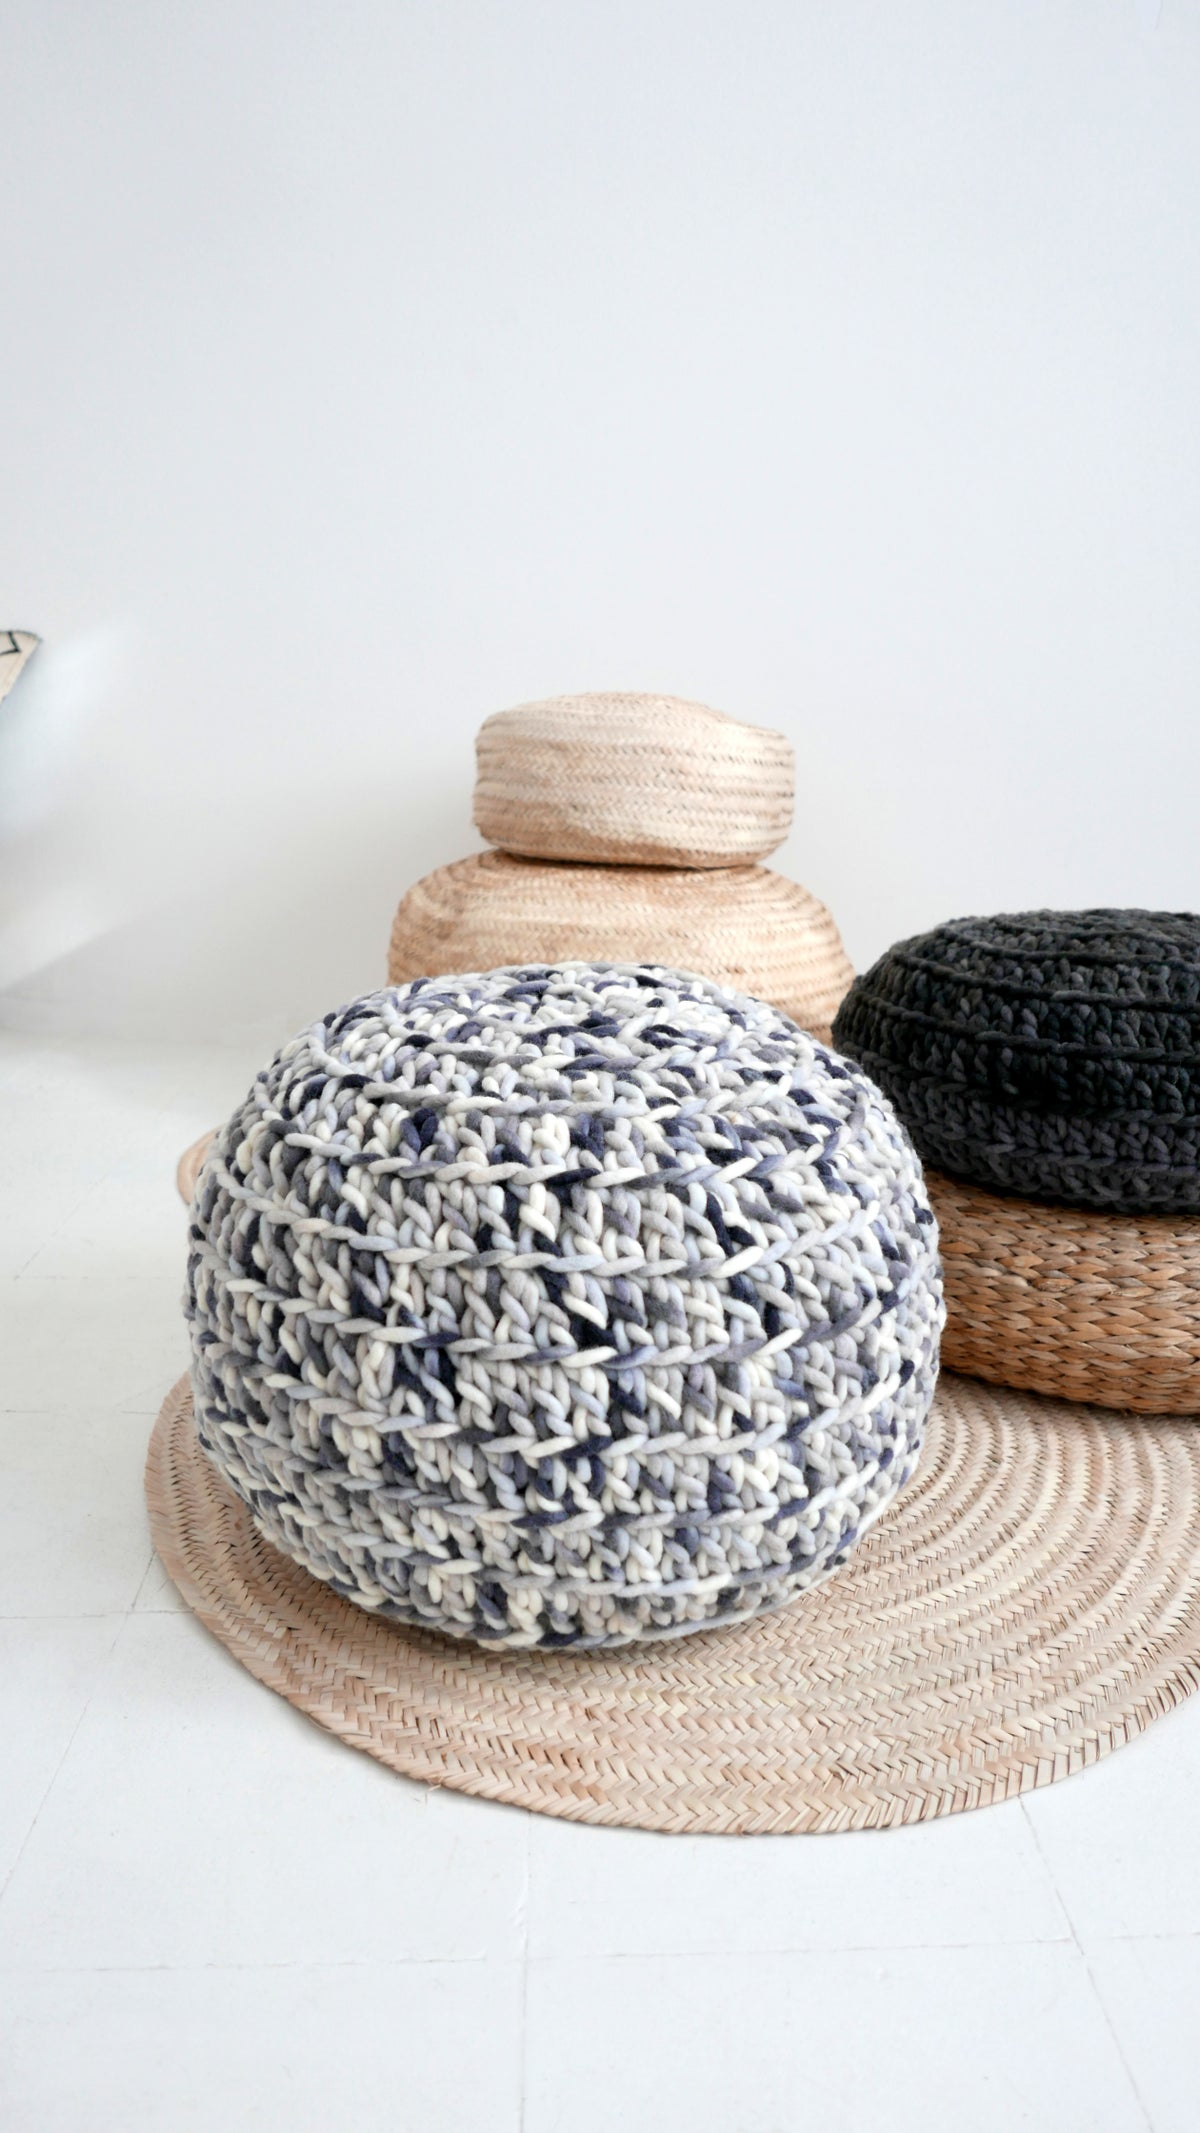 Image of Big Crochet Floor Cushion thick wool - Gray and White